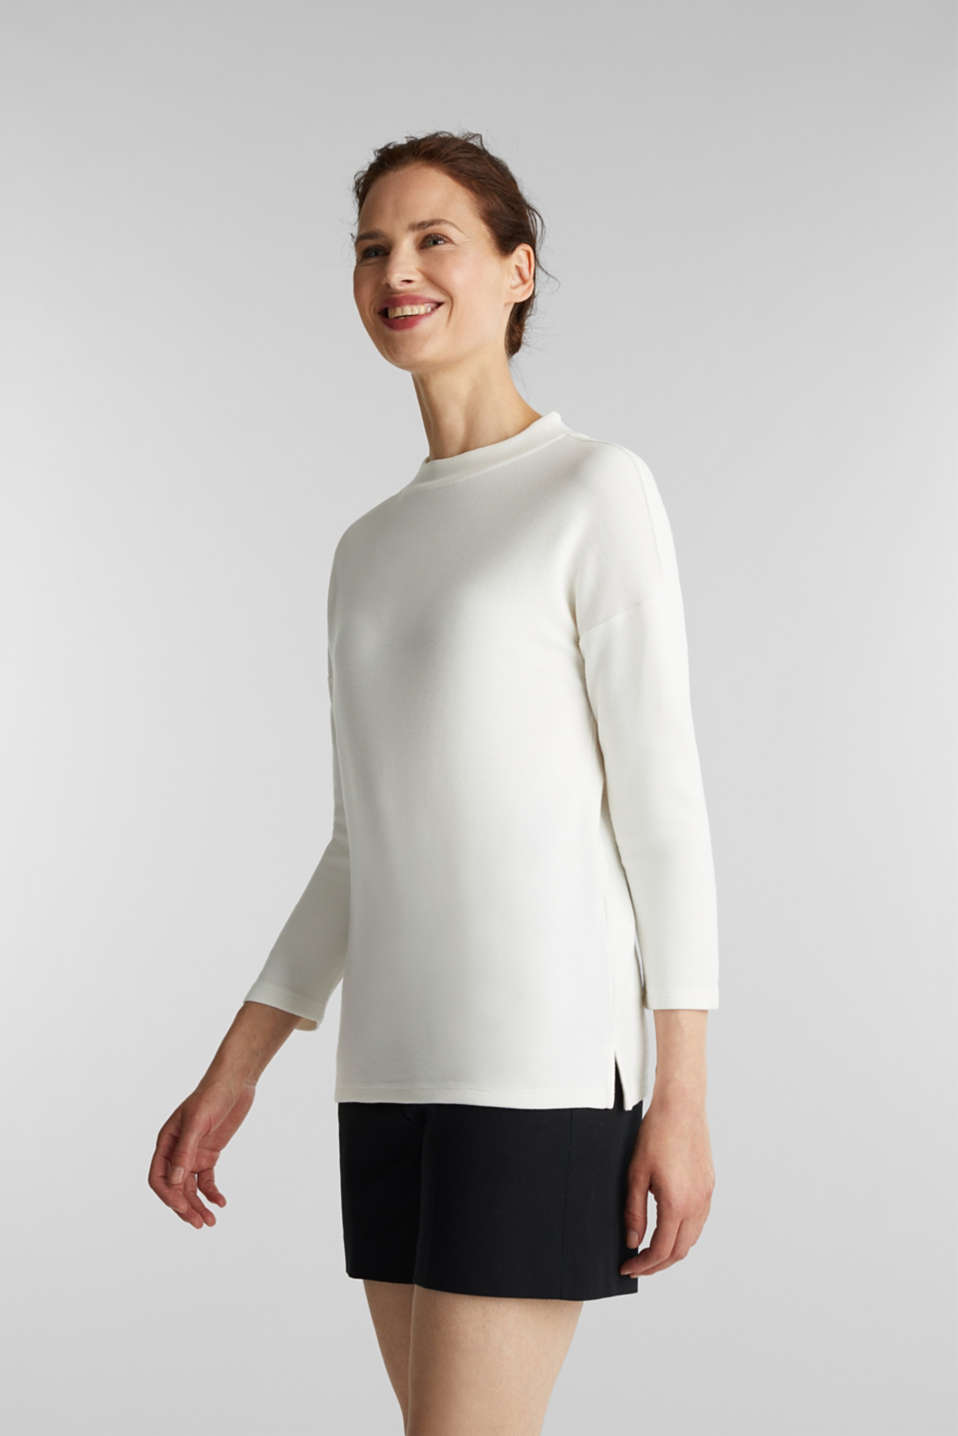 Esprit - Ribbed sweatshirt with a stand-up collar